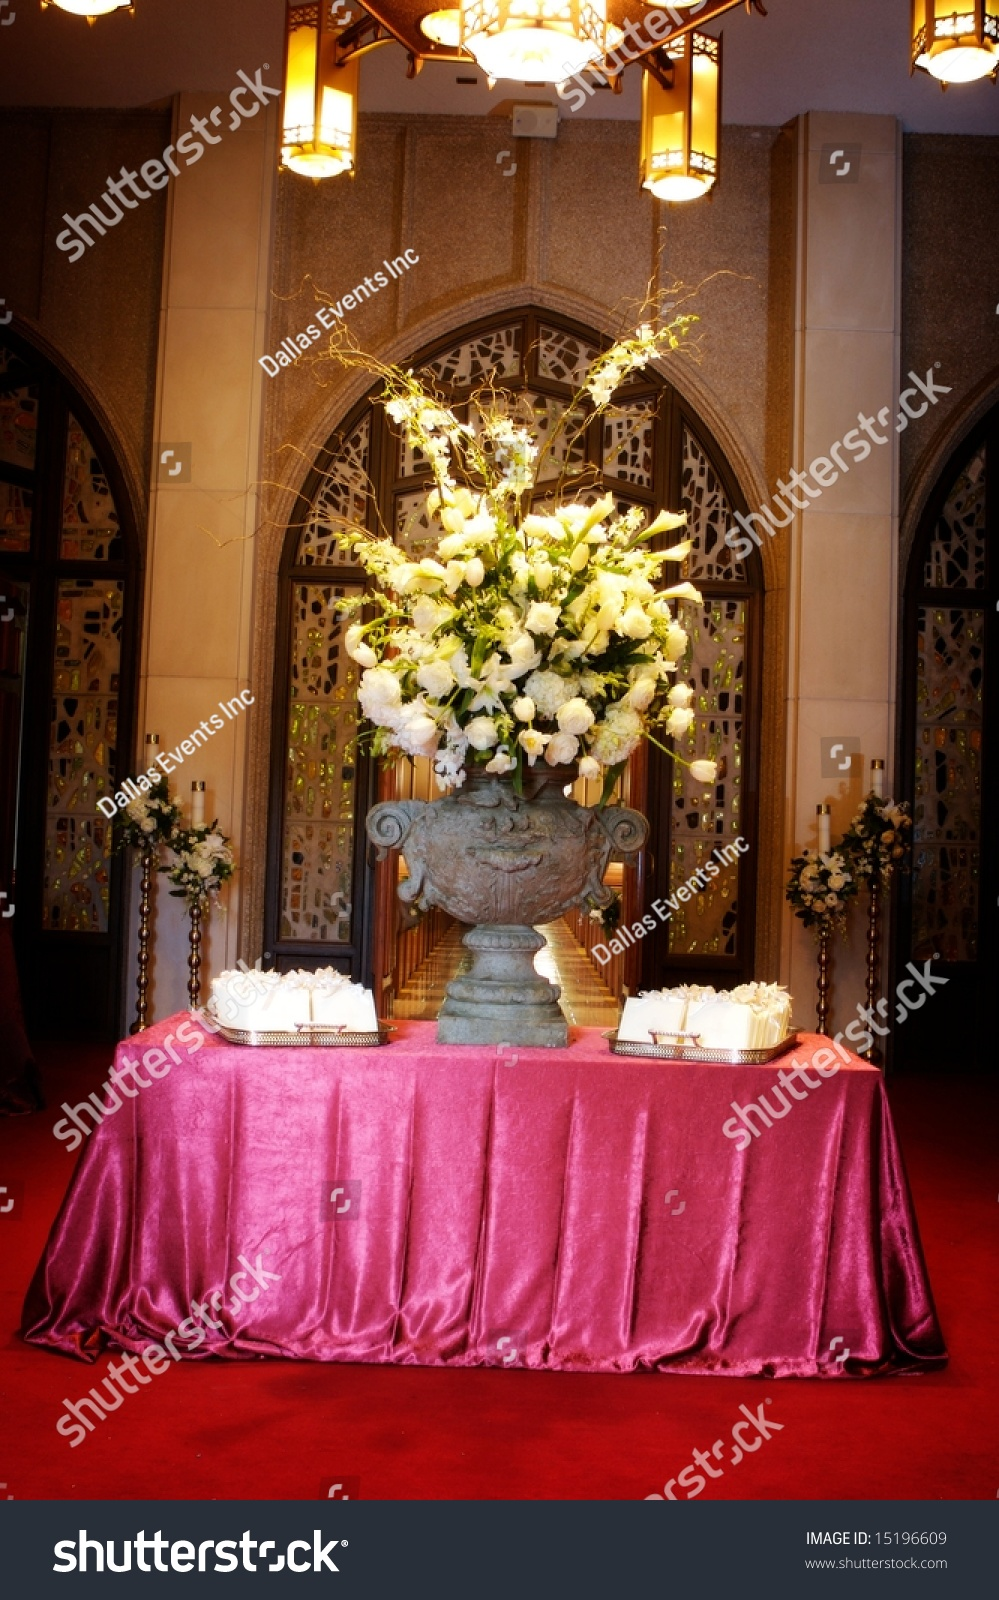 An Image Of A Luxurious Table Setting With Large Flower Arrangement And Wedding Programs